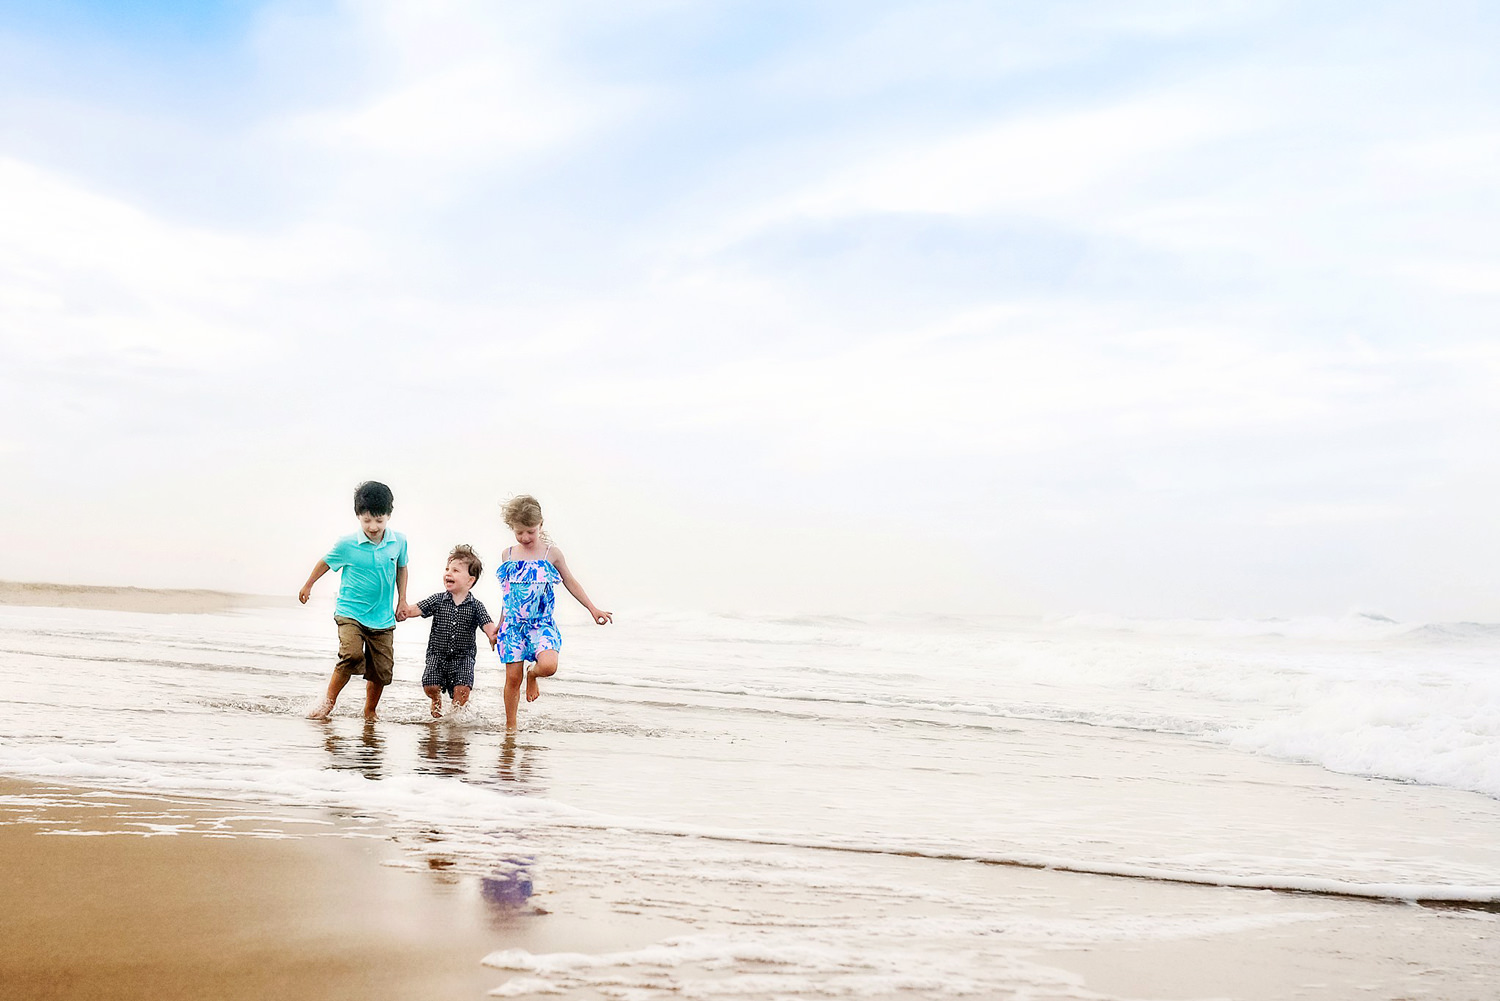 kids-running-on-the-beach-virginia-beach-lifestyle-photos-melissa-bliss-photography.jpg